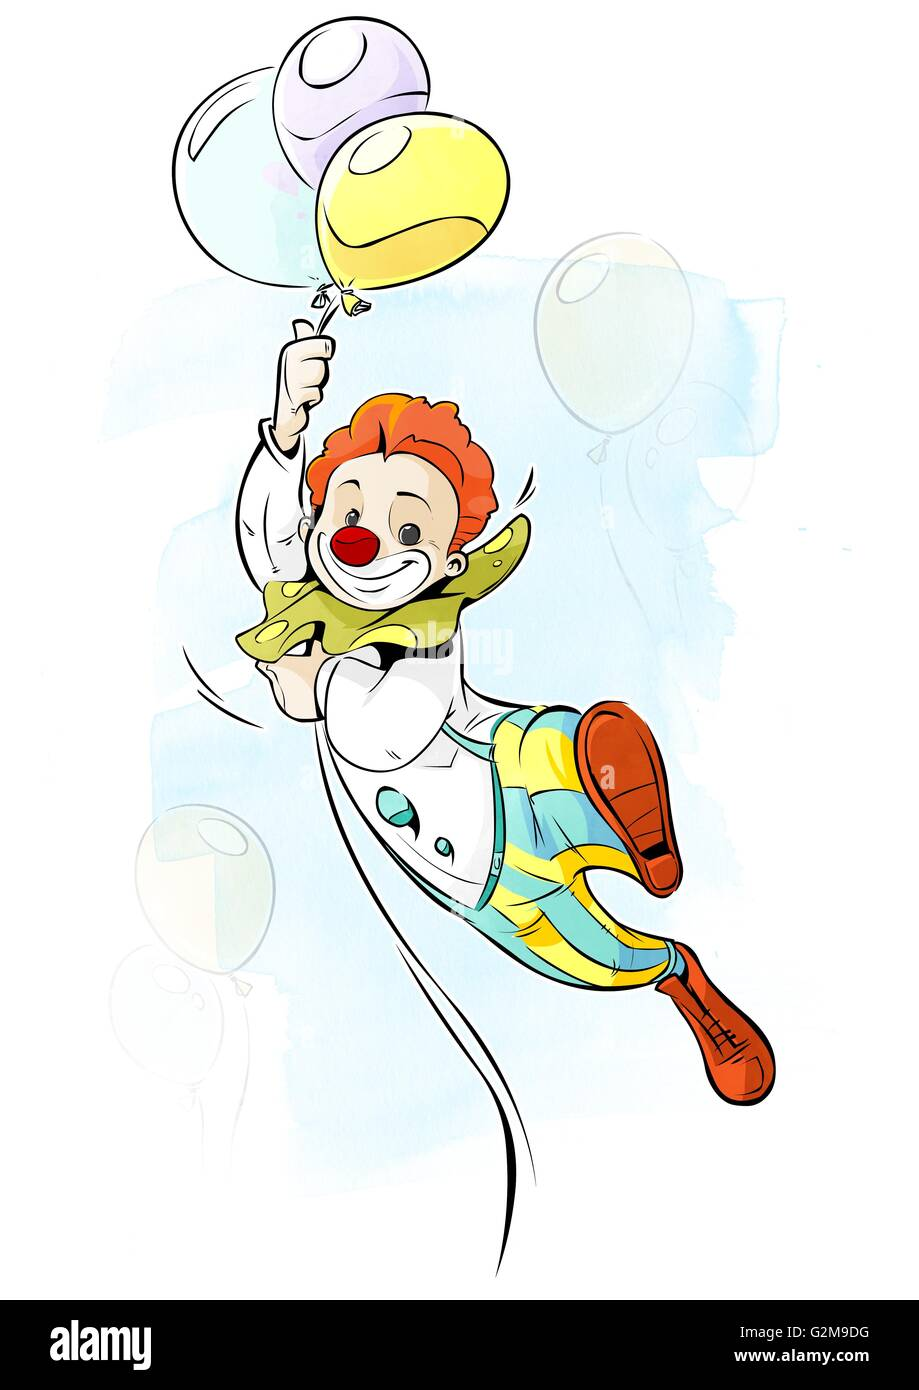 Clown flying on balloons - Stock Image